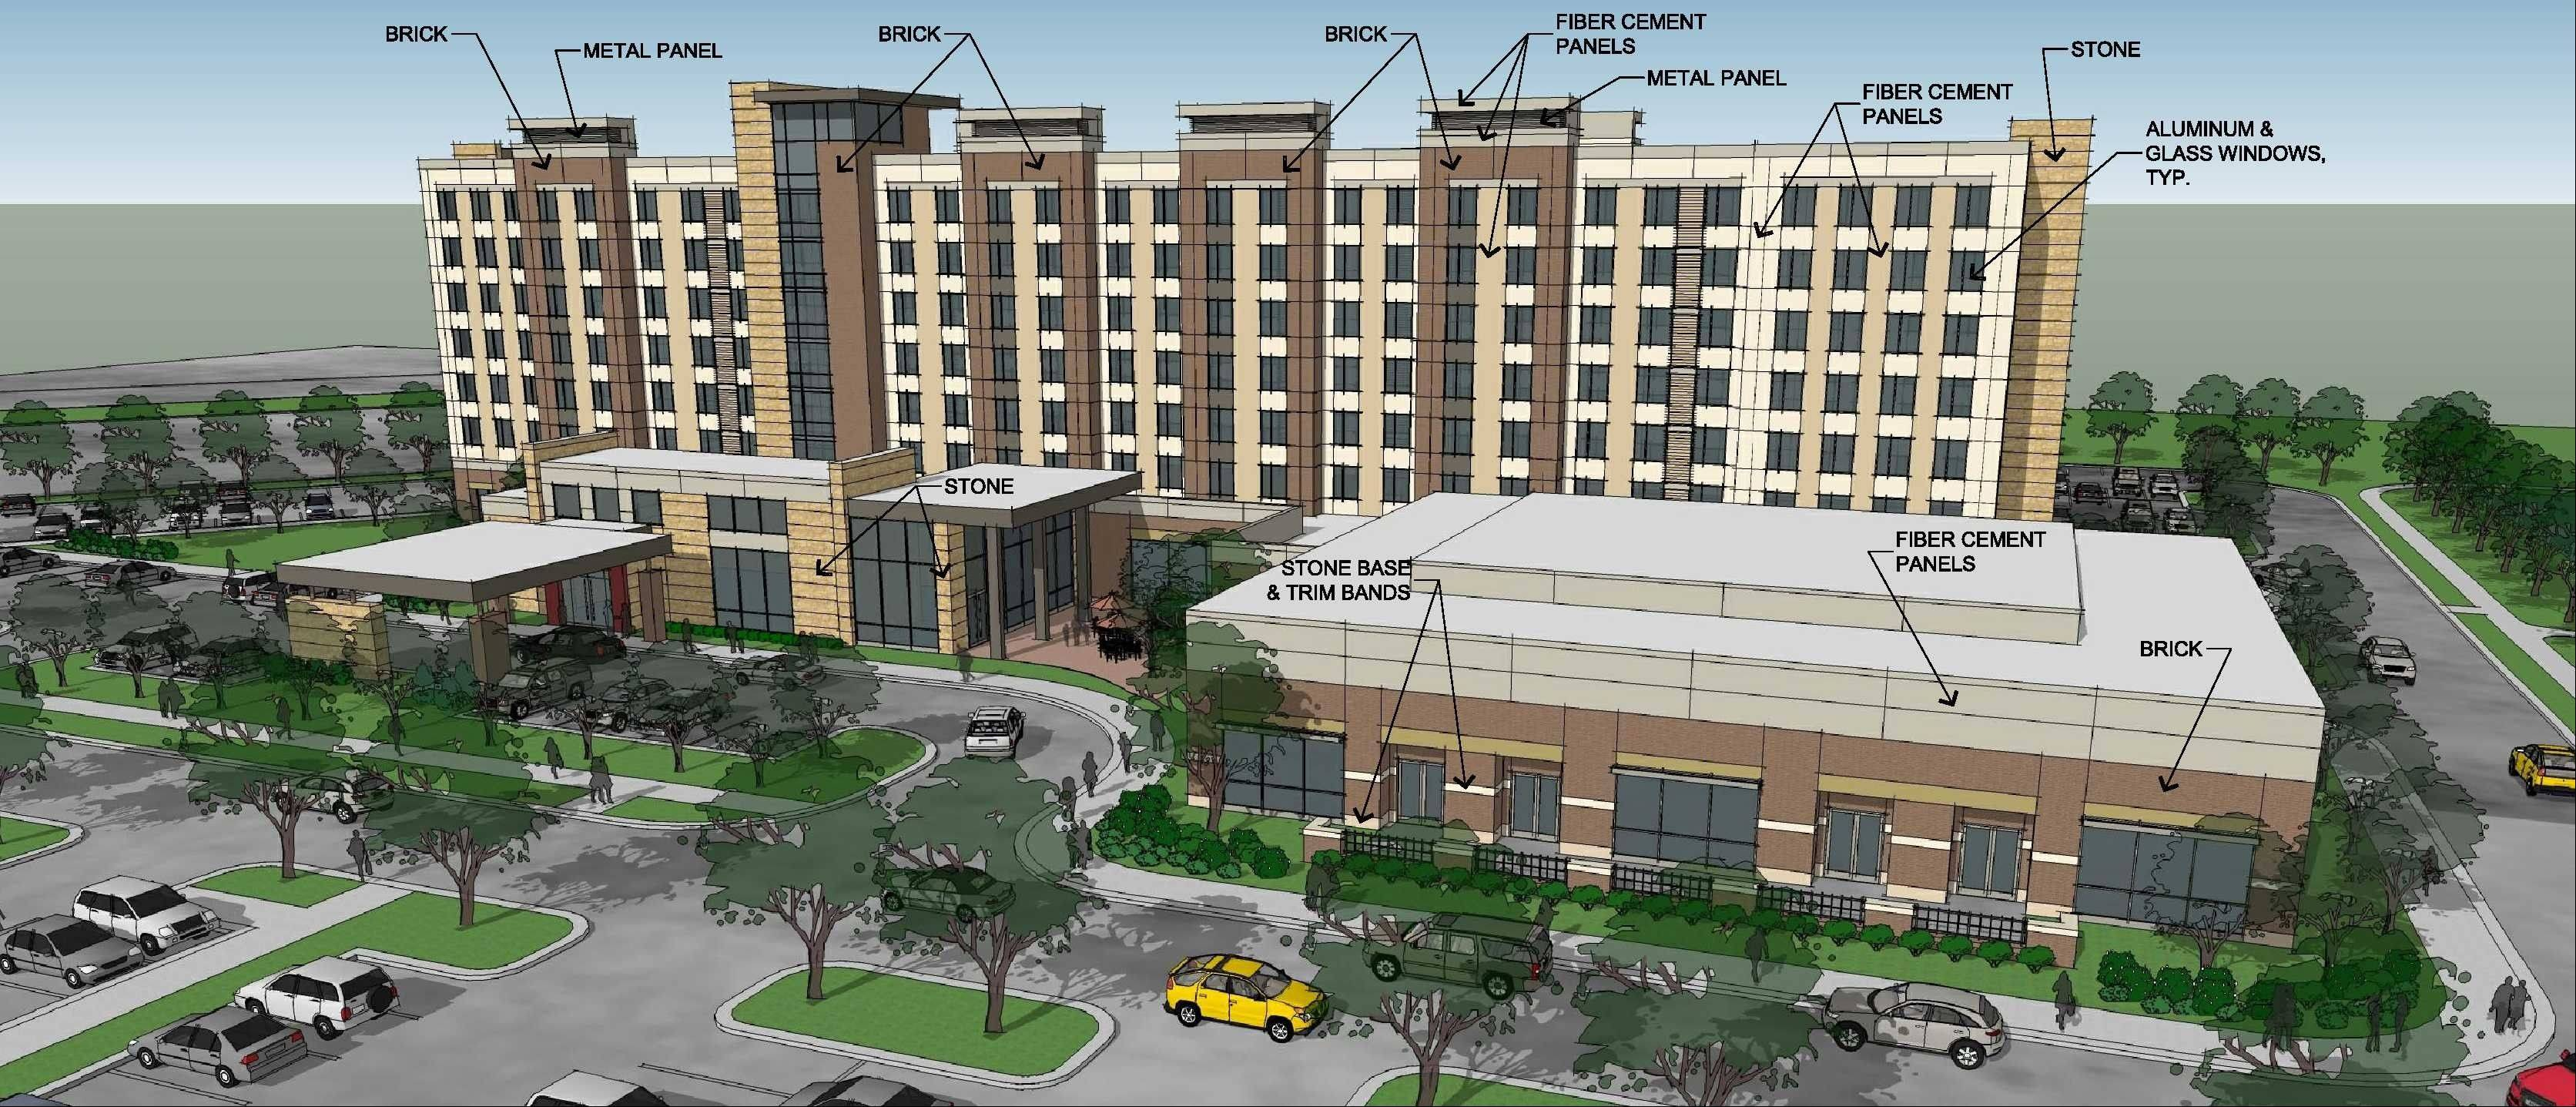 Naperville city councilmen indicated they are willing to provide a $7.5 million incentive package to developers of Freedom Plaza, which is slated to include an Embassy Suites hotel, a large-scale conference center and ballroom and four free-standing restaurants on Abriter Court north of Diehl Road.